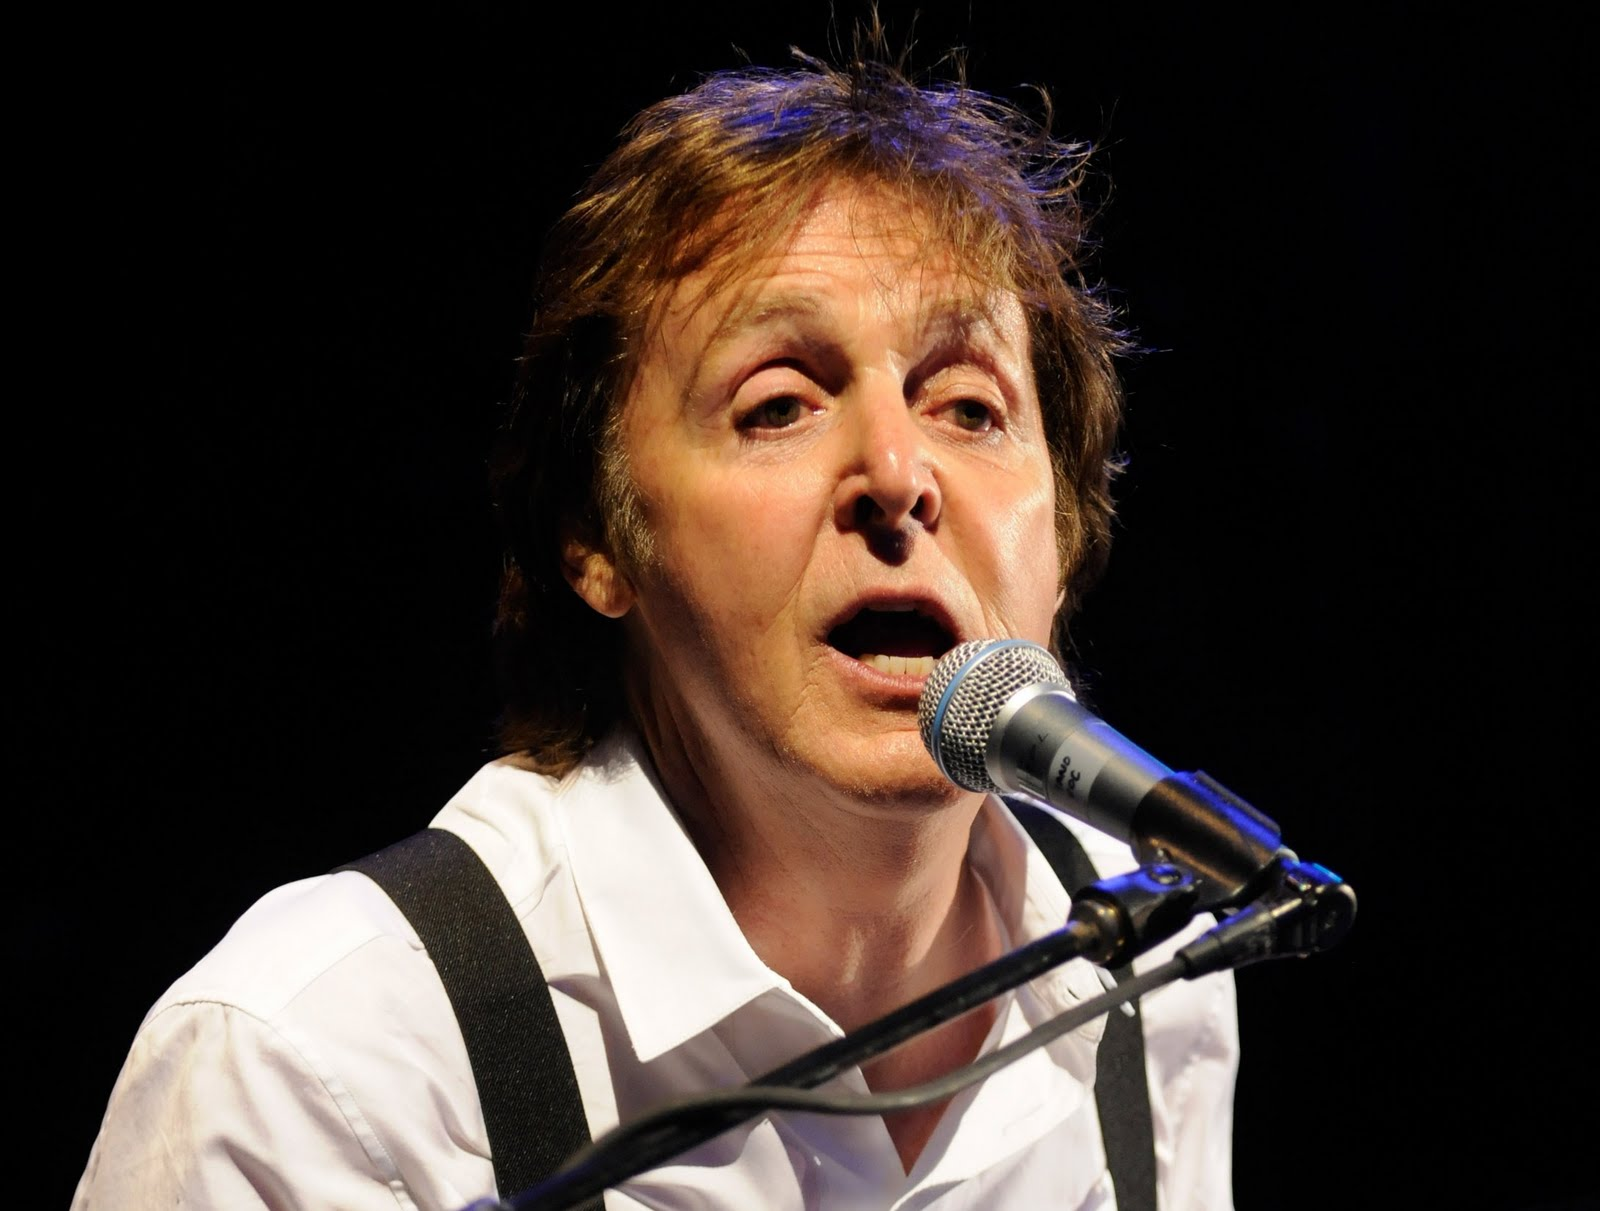 paul-mccartney-4-17-091+-+Copy+2